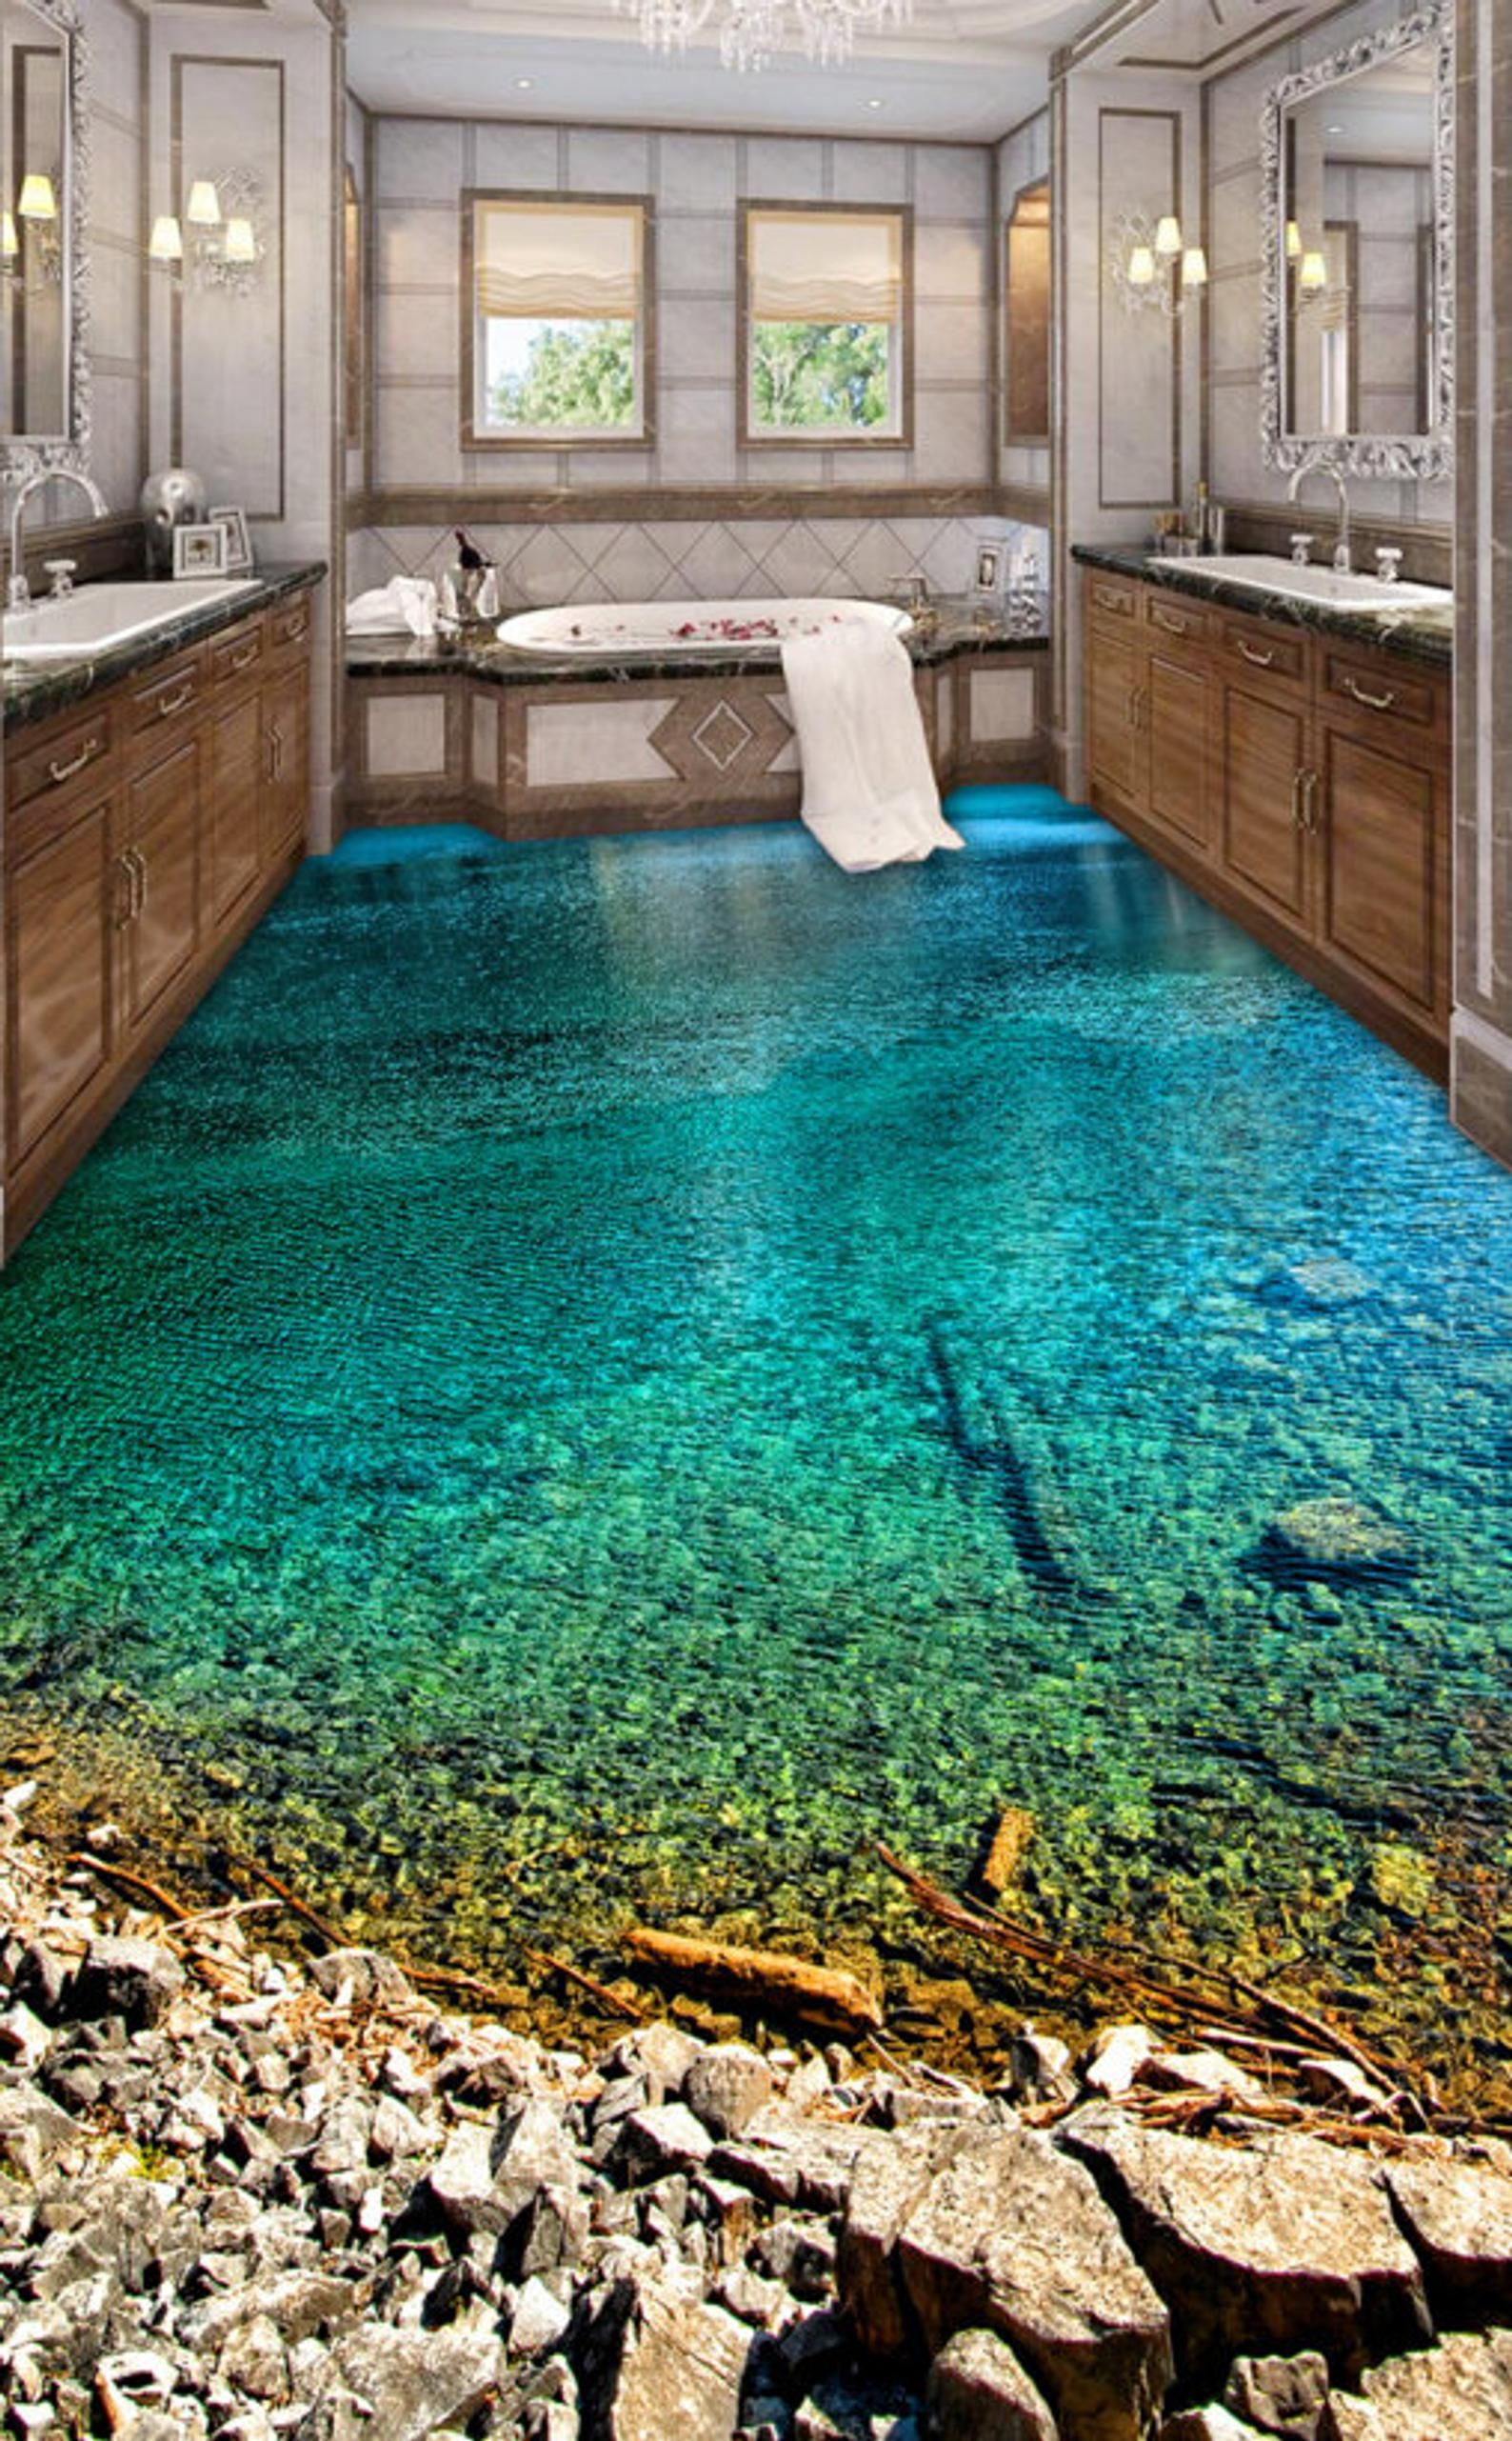 3d Beach F361 Floor Wallpaper Murals Self Adhesive Removable Kitchen Bath Floor Waterproof Floor Rug Mat Print Epoxy Aj Wallpaper In 2020 Floor Murals 3d Floor Painting Floor Wallpaper